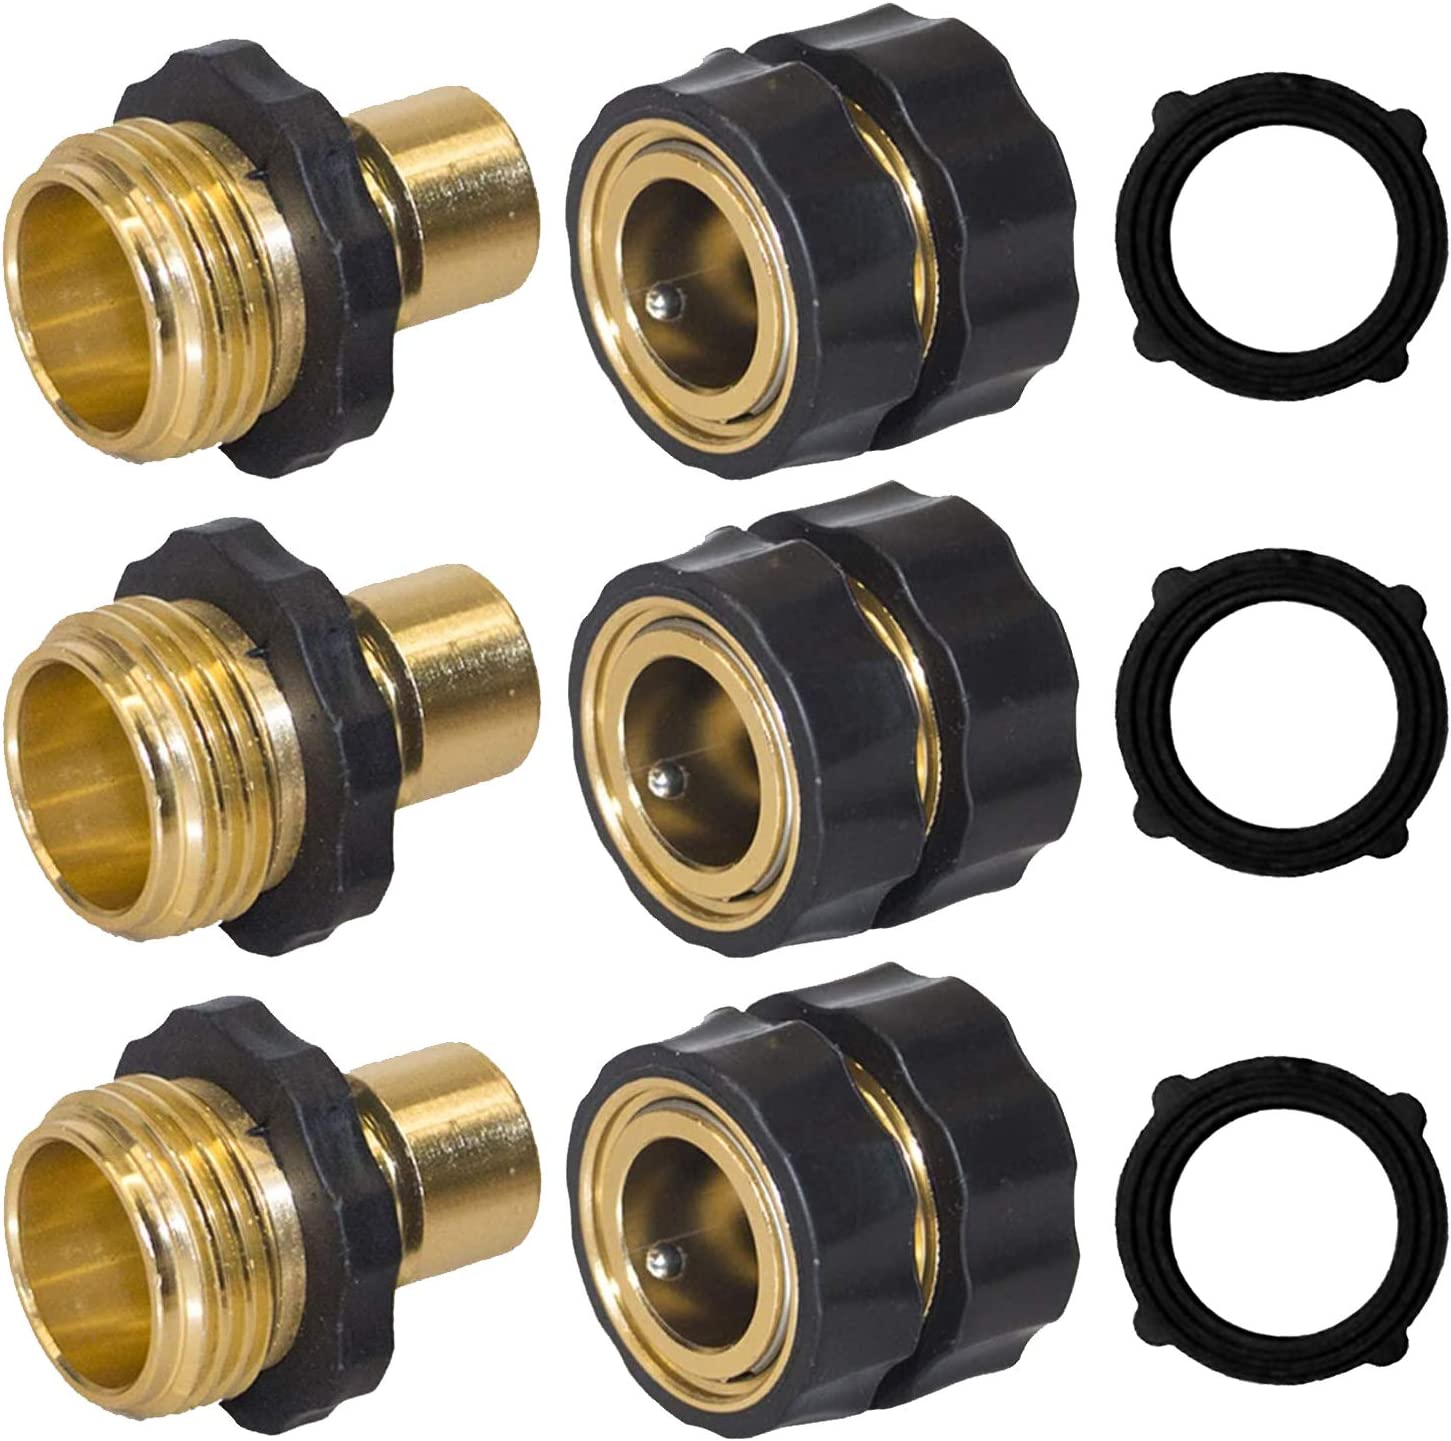 Hourleey Garden Hose Quick Connector, 3/4 Inch Male and Female Garden Hose Fitting Quick Connector, 3 Set